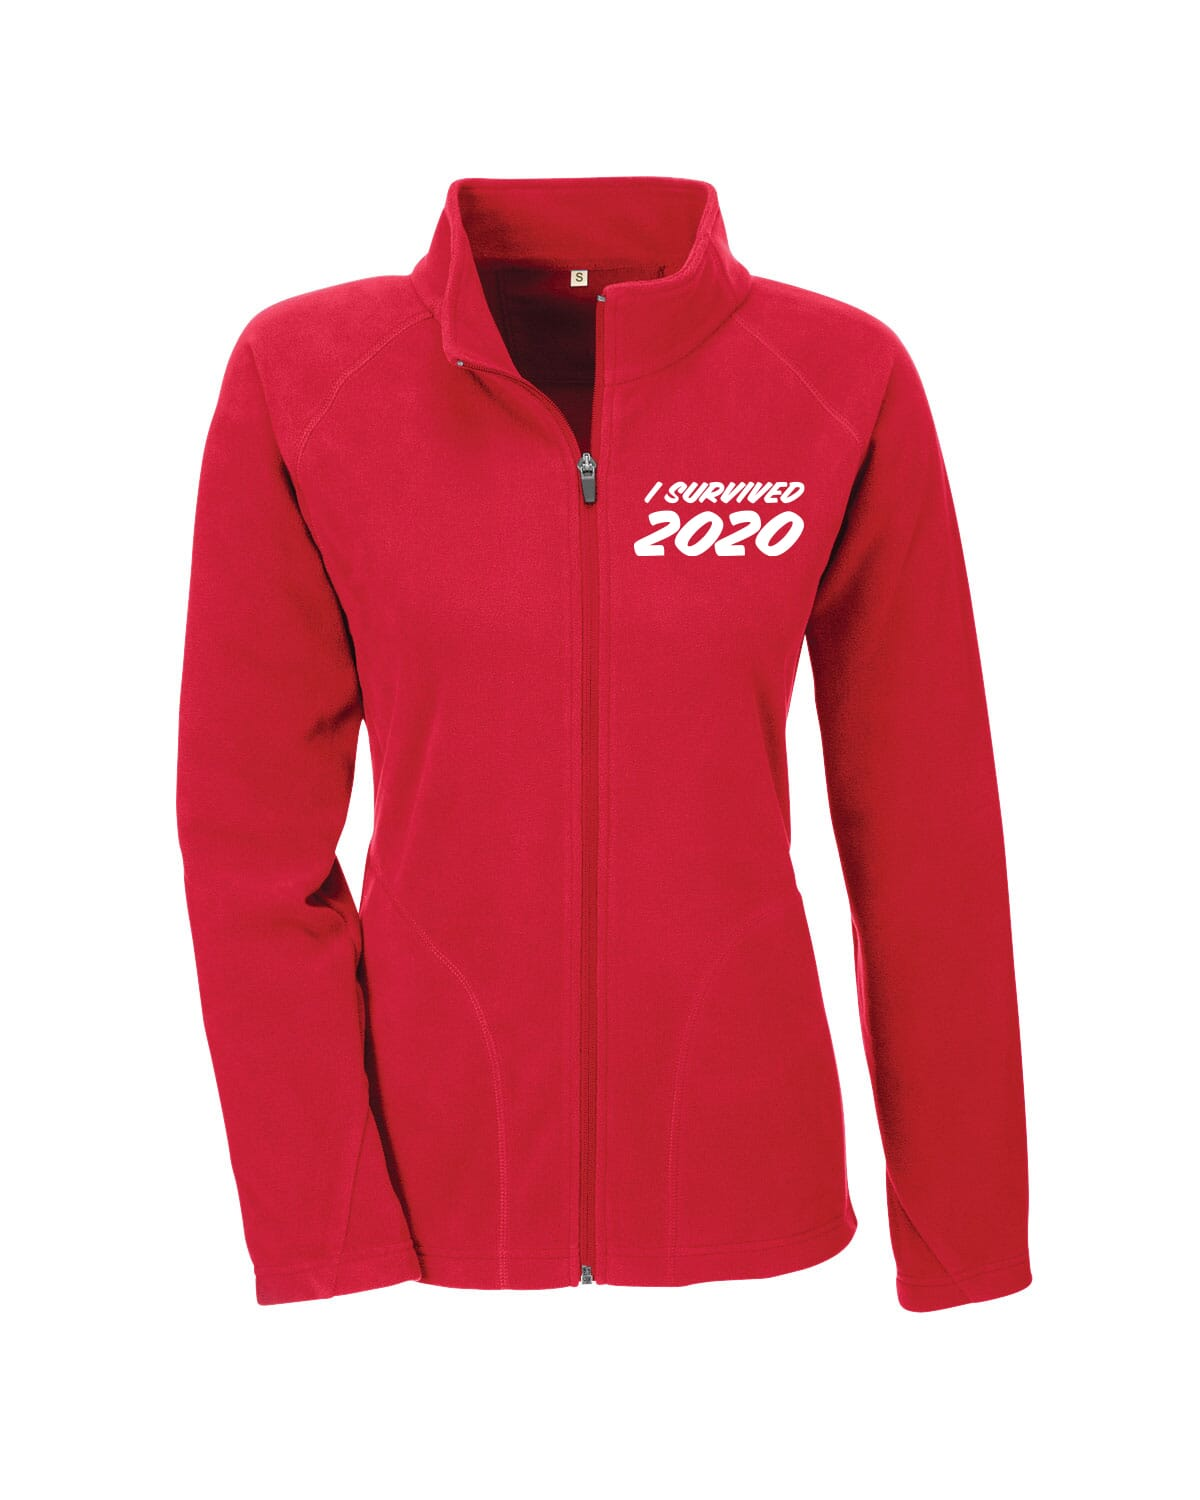 Microfleece with I Survived 2020 saying